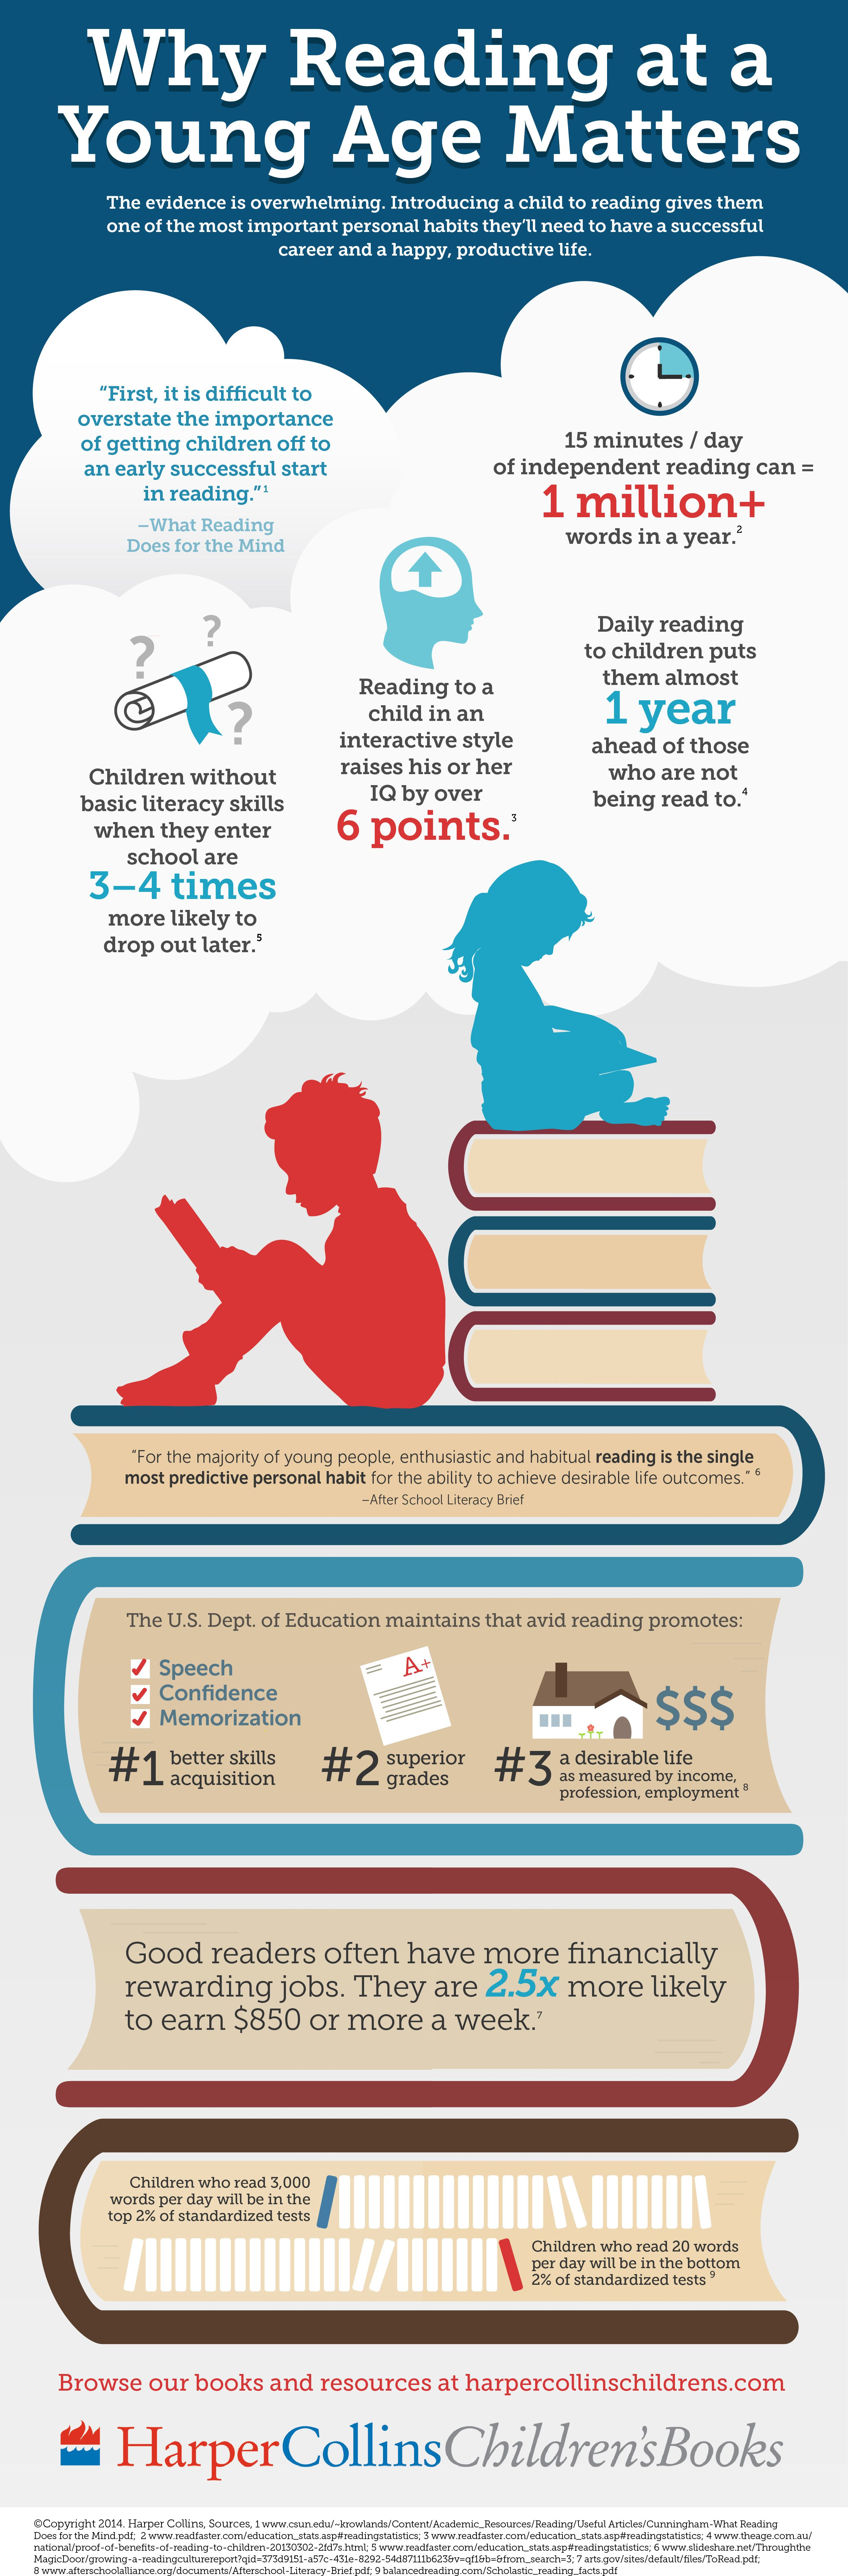 Why reading at a young age matters books reading parenting why reading at a young age matters books reading parenting infographic fandeluxe Images